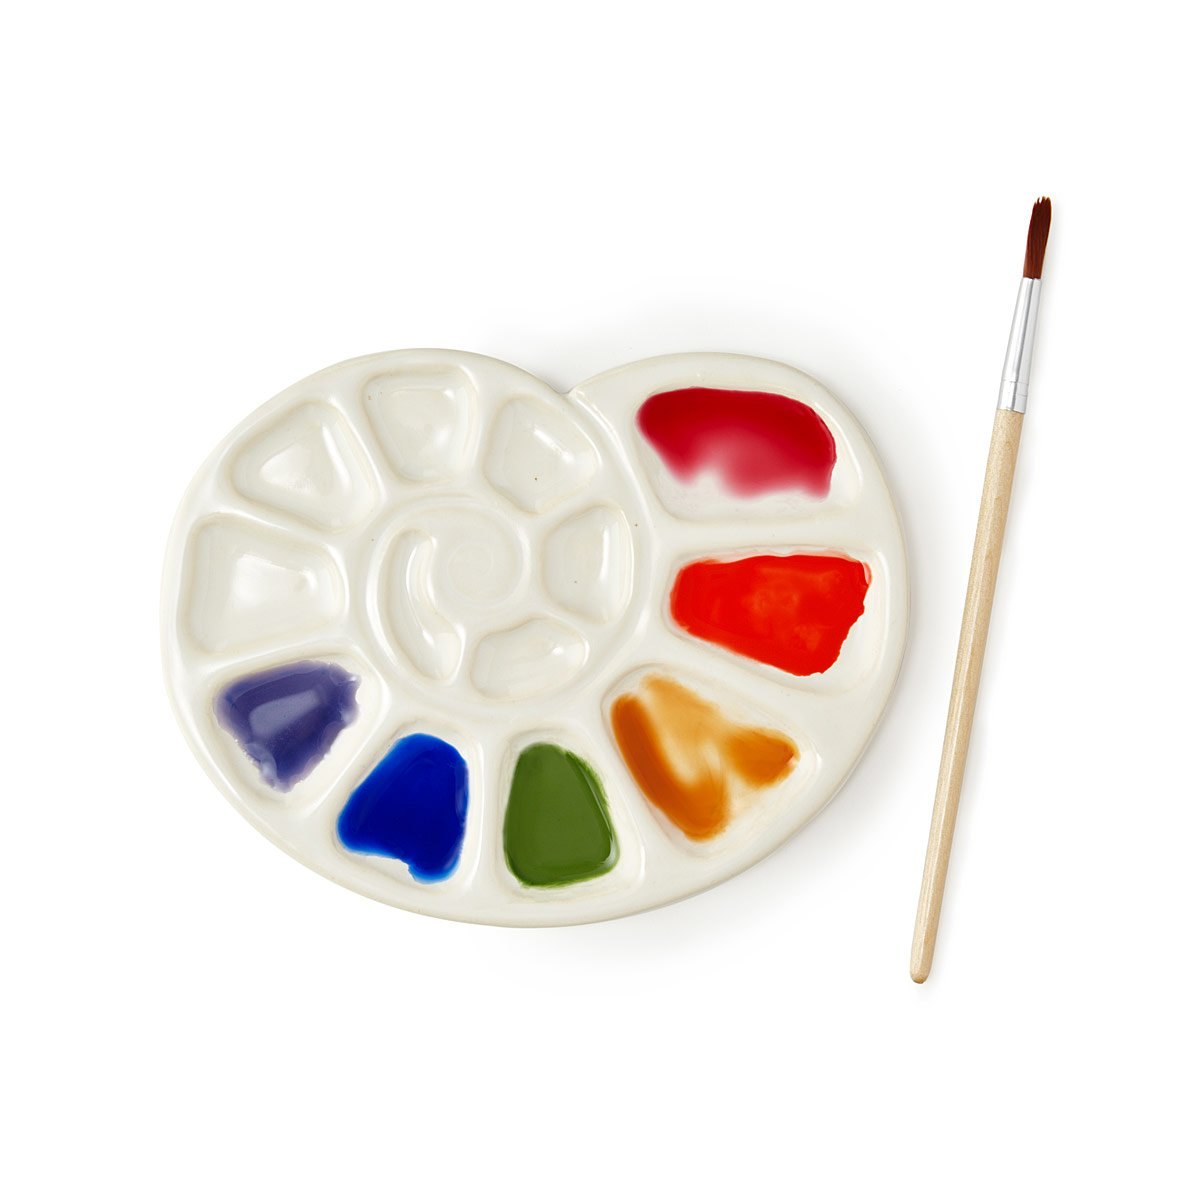 Nbsp Moon Shell Palette In 2020 Ceramics Ceramics Projects Ceramic Painting